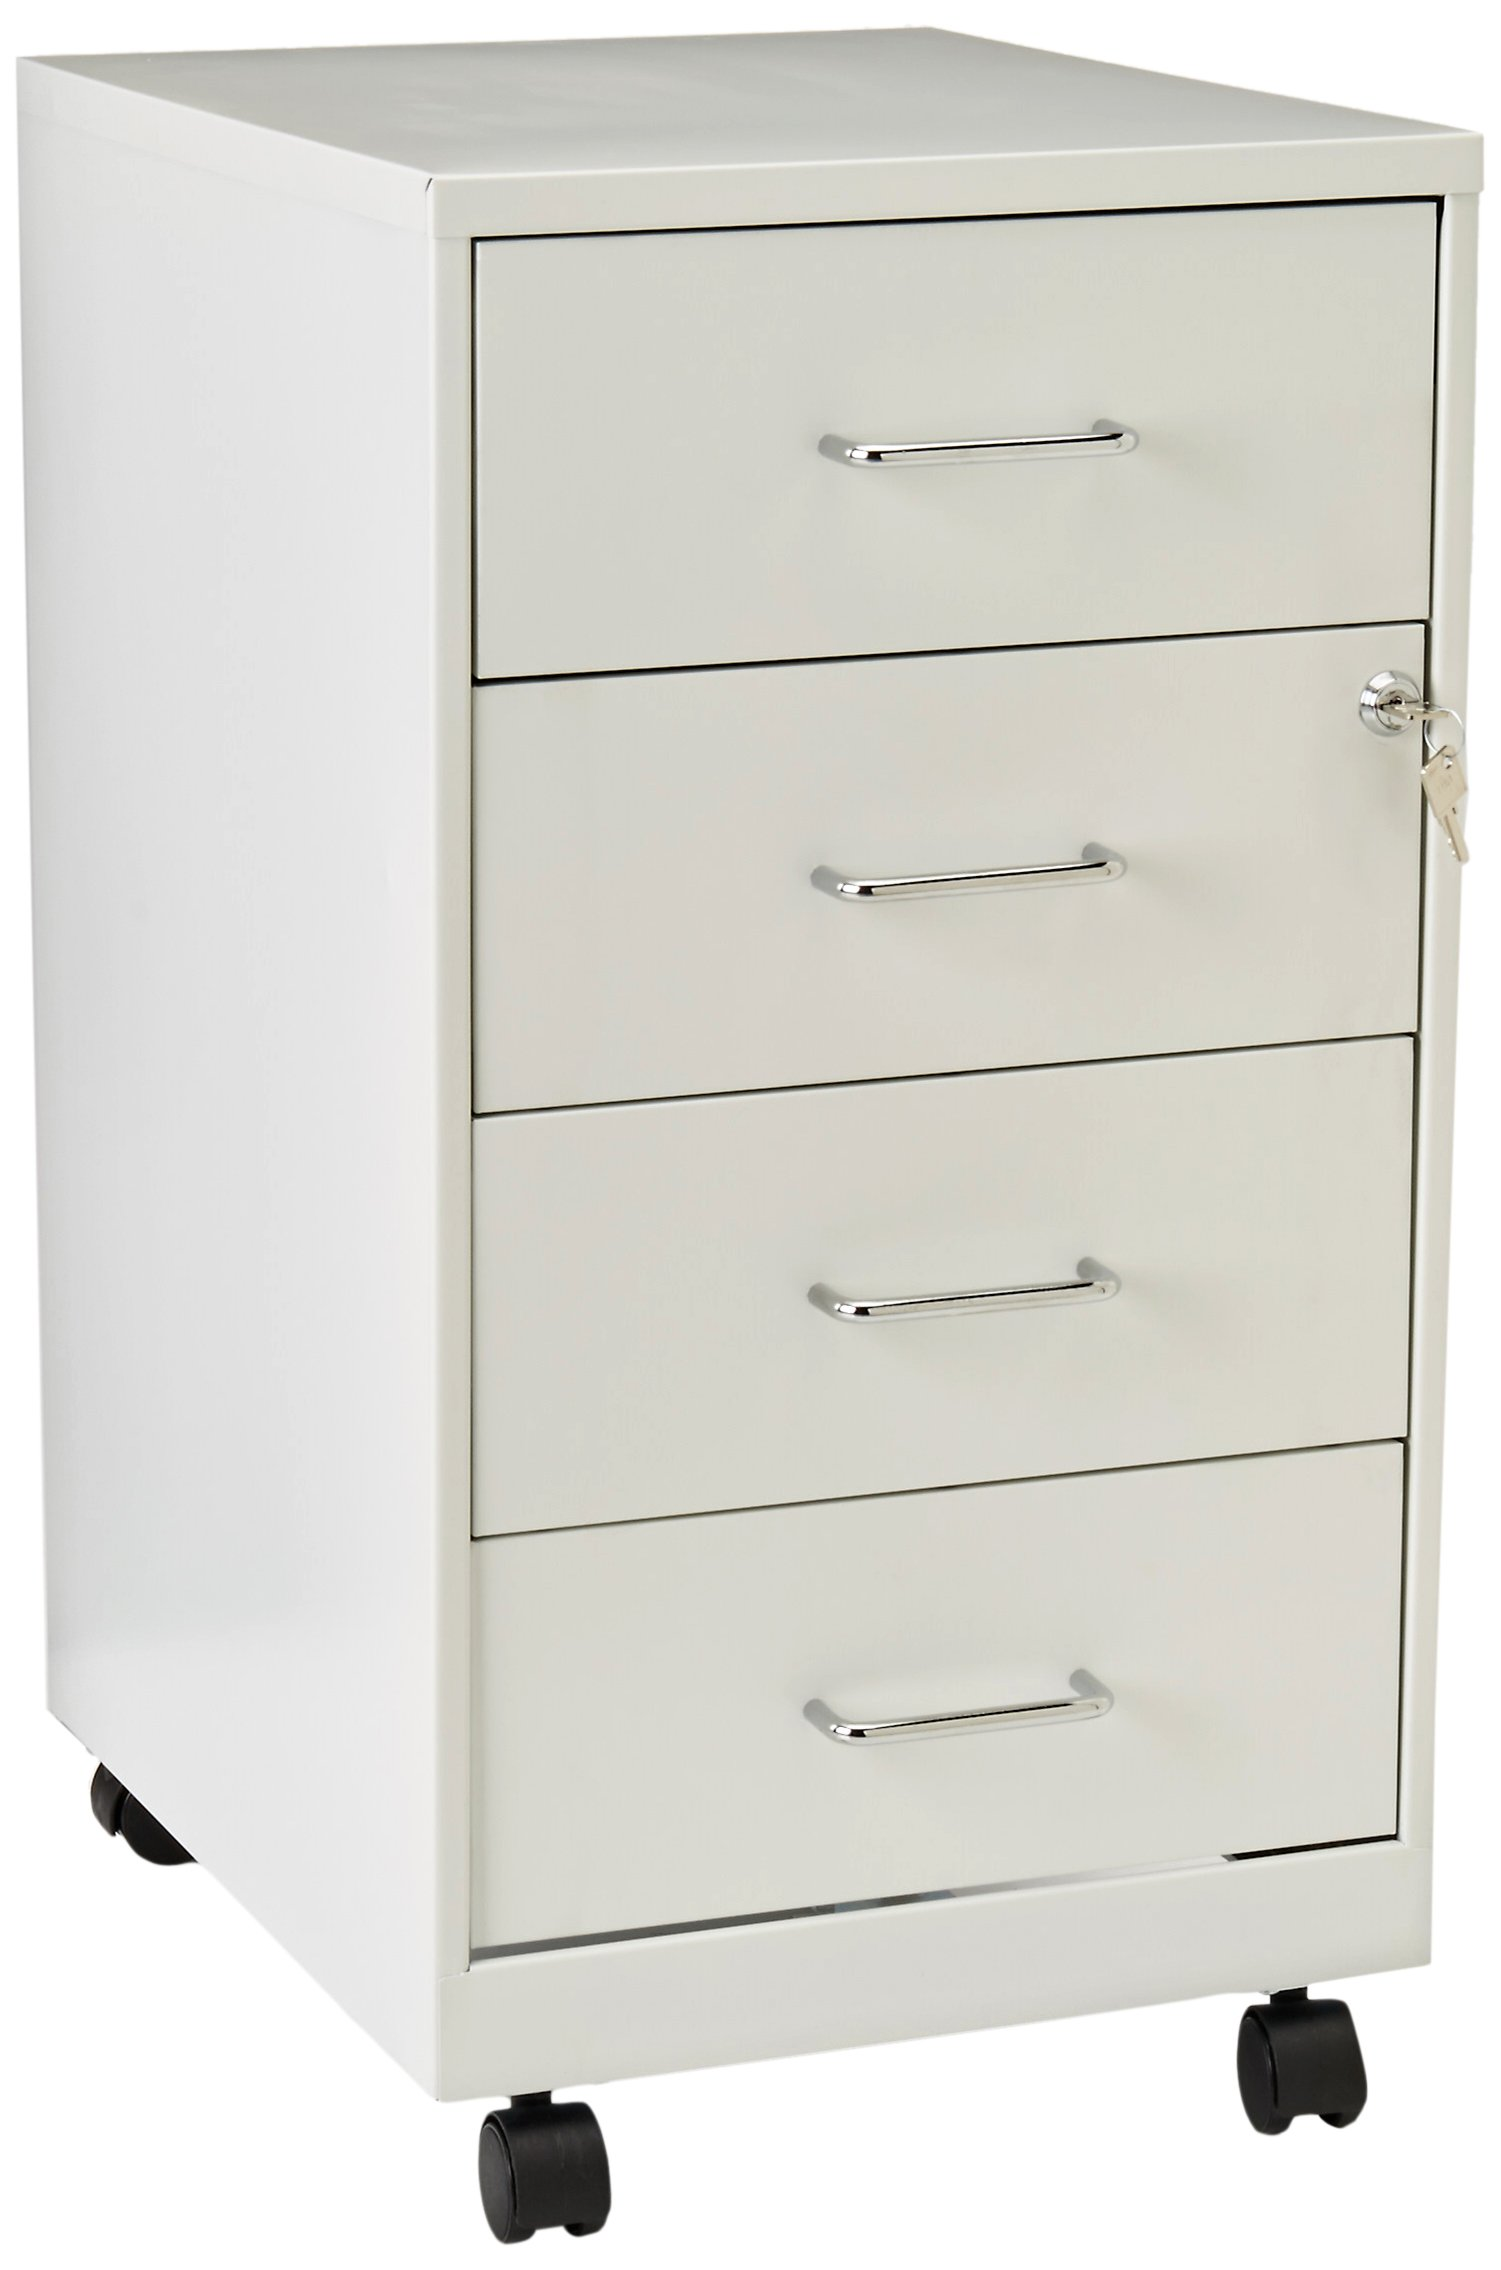 Lorell LLR19537 4 Drawer File Cabinet, White by Lorell